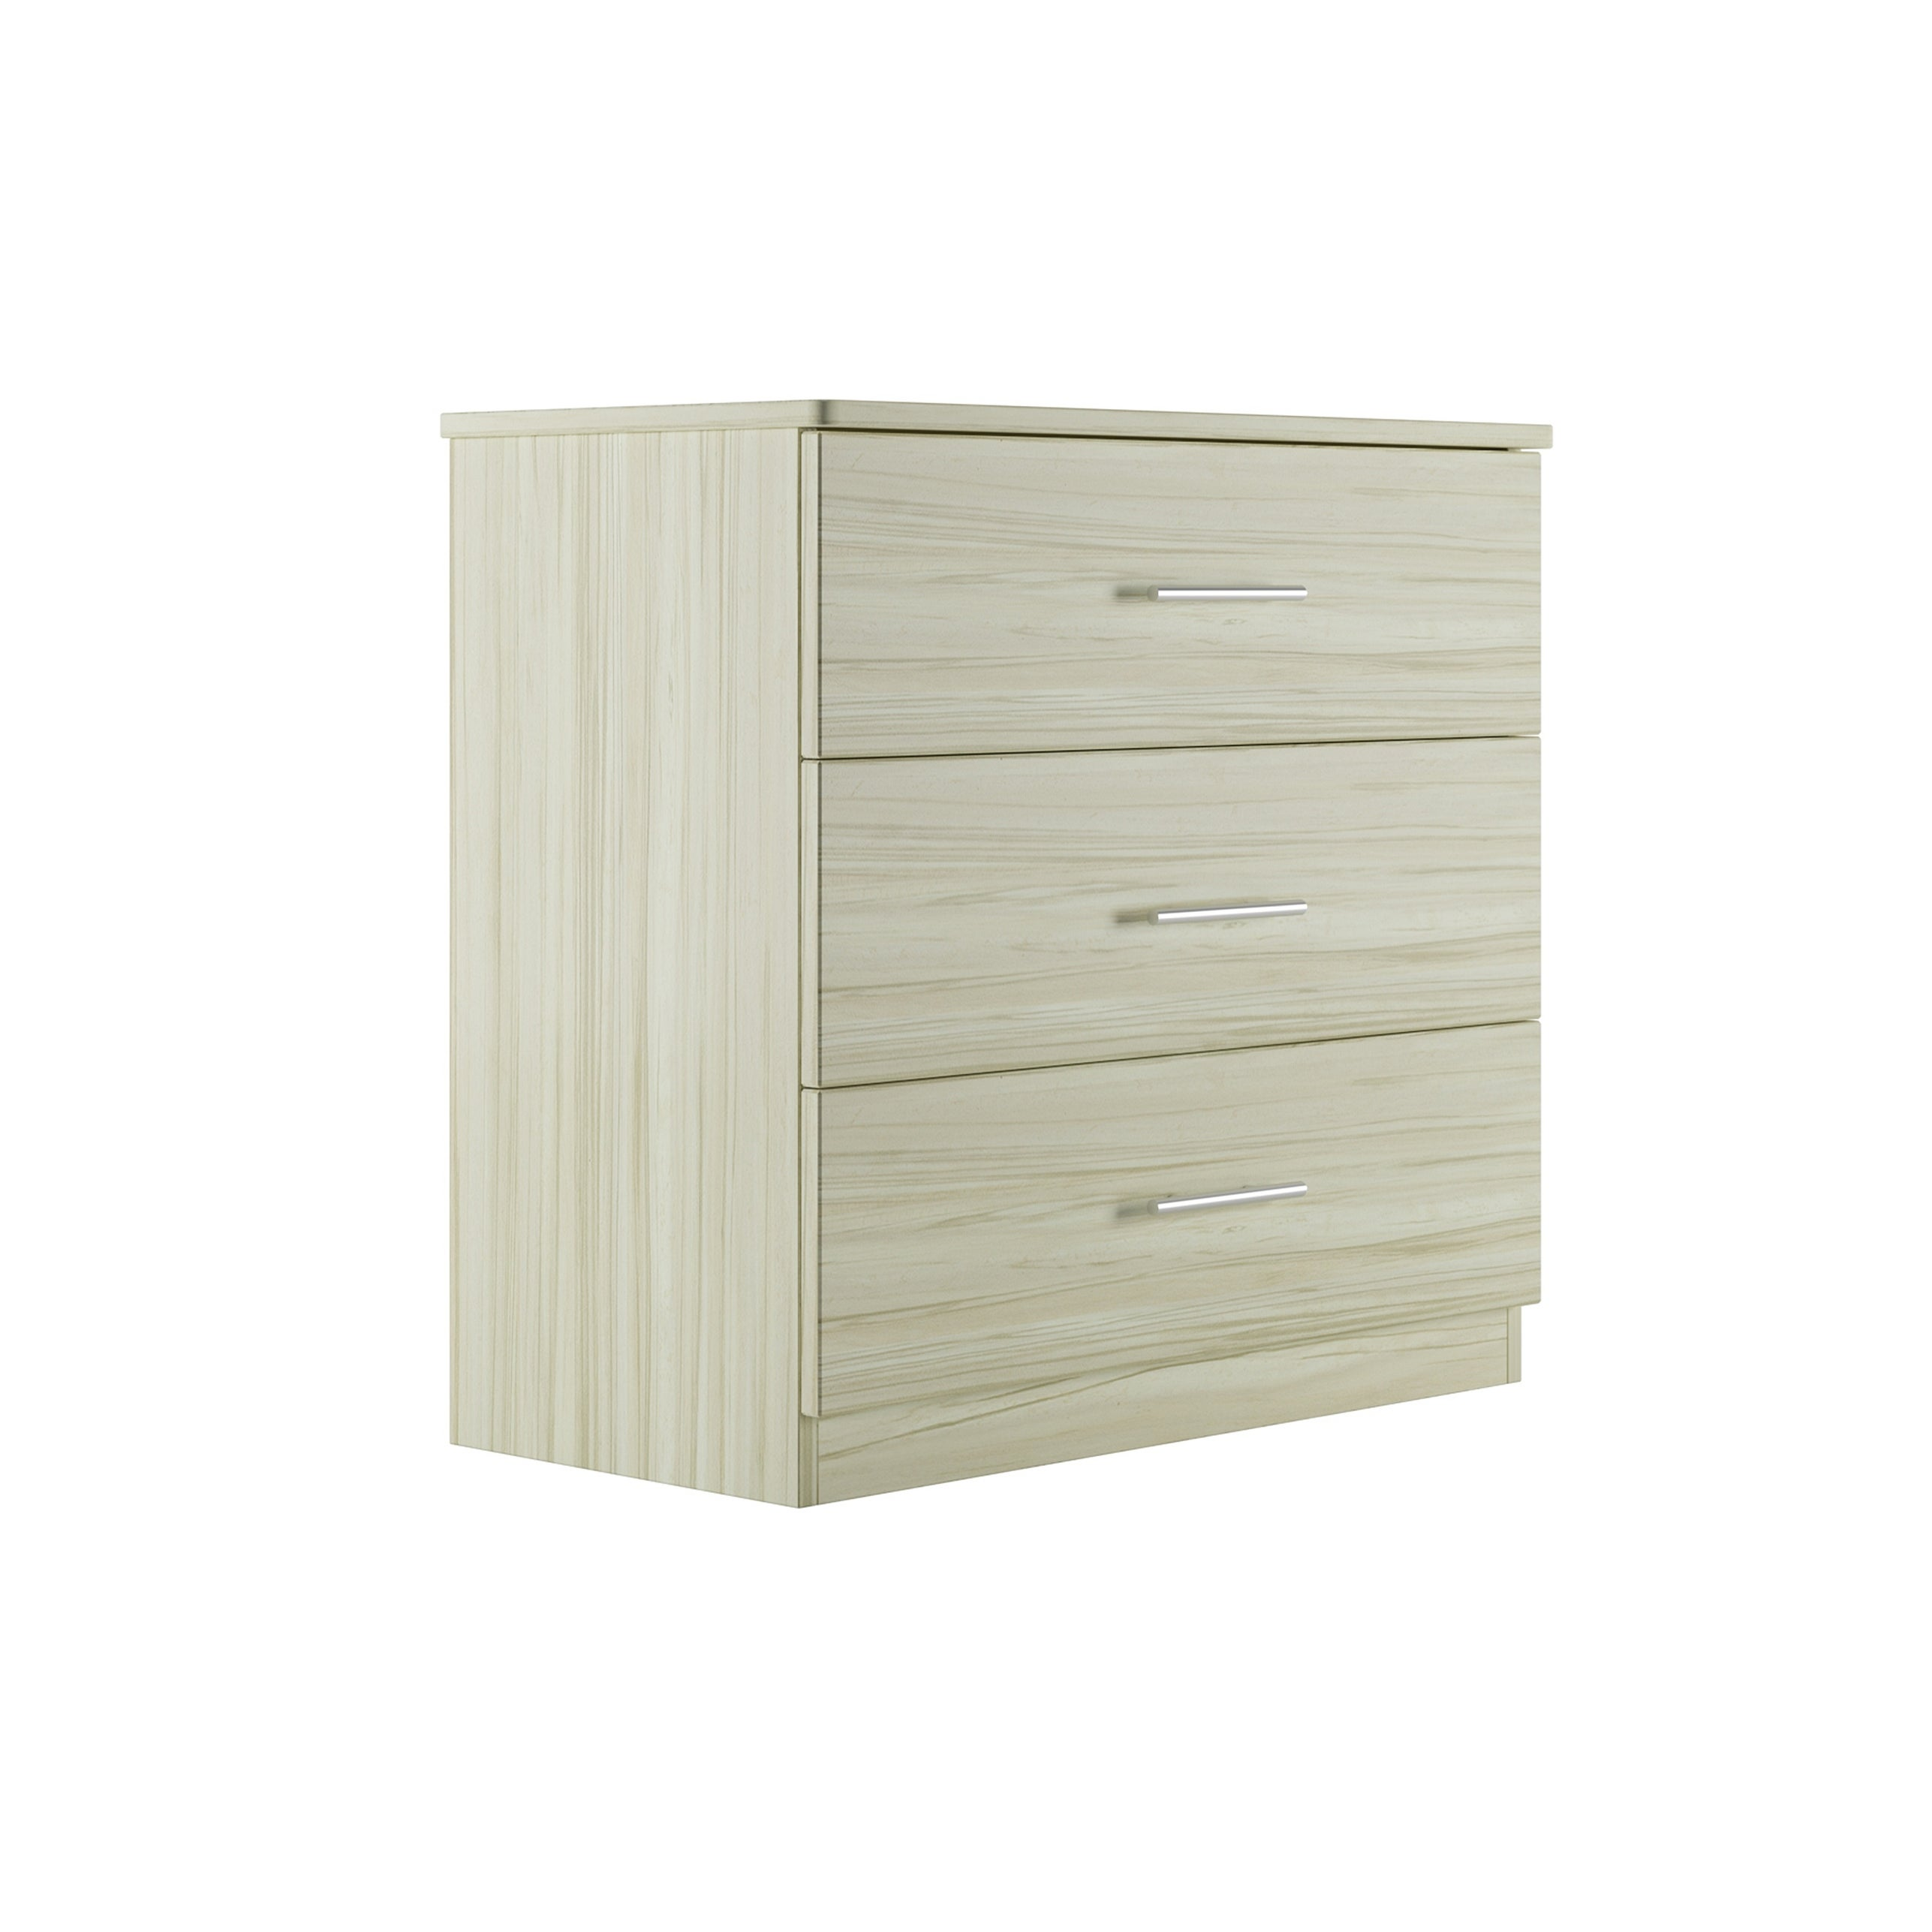 Milford Solid Wood Cane 3 Drawer Chest On Sale Overstock 31323796